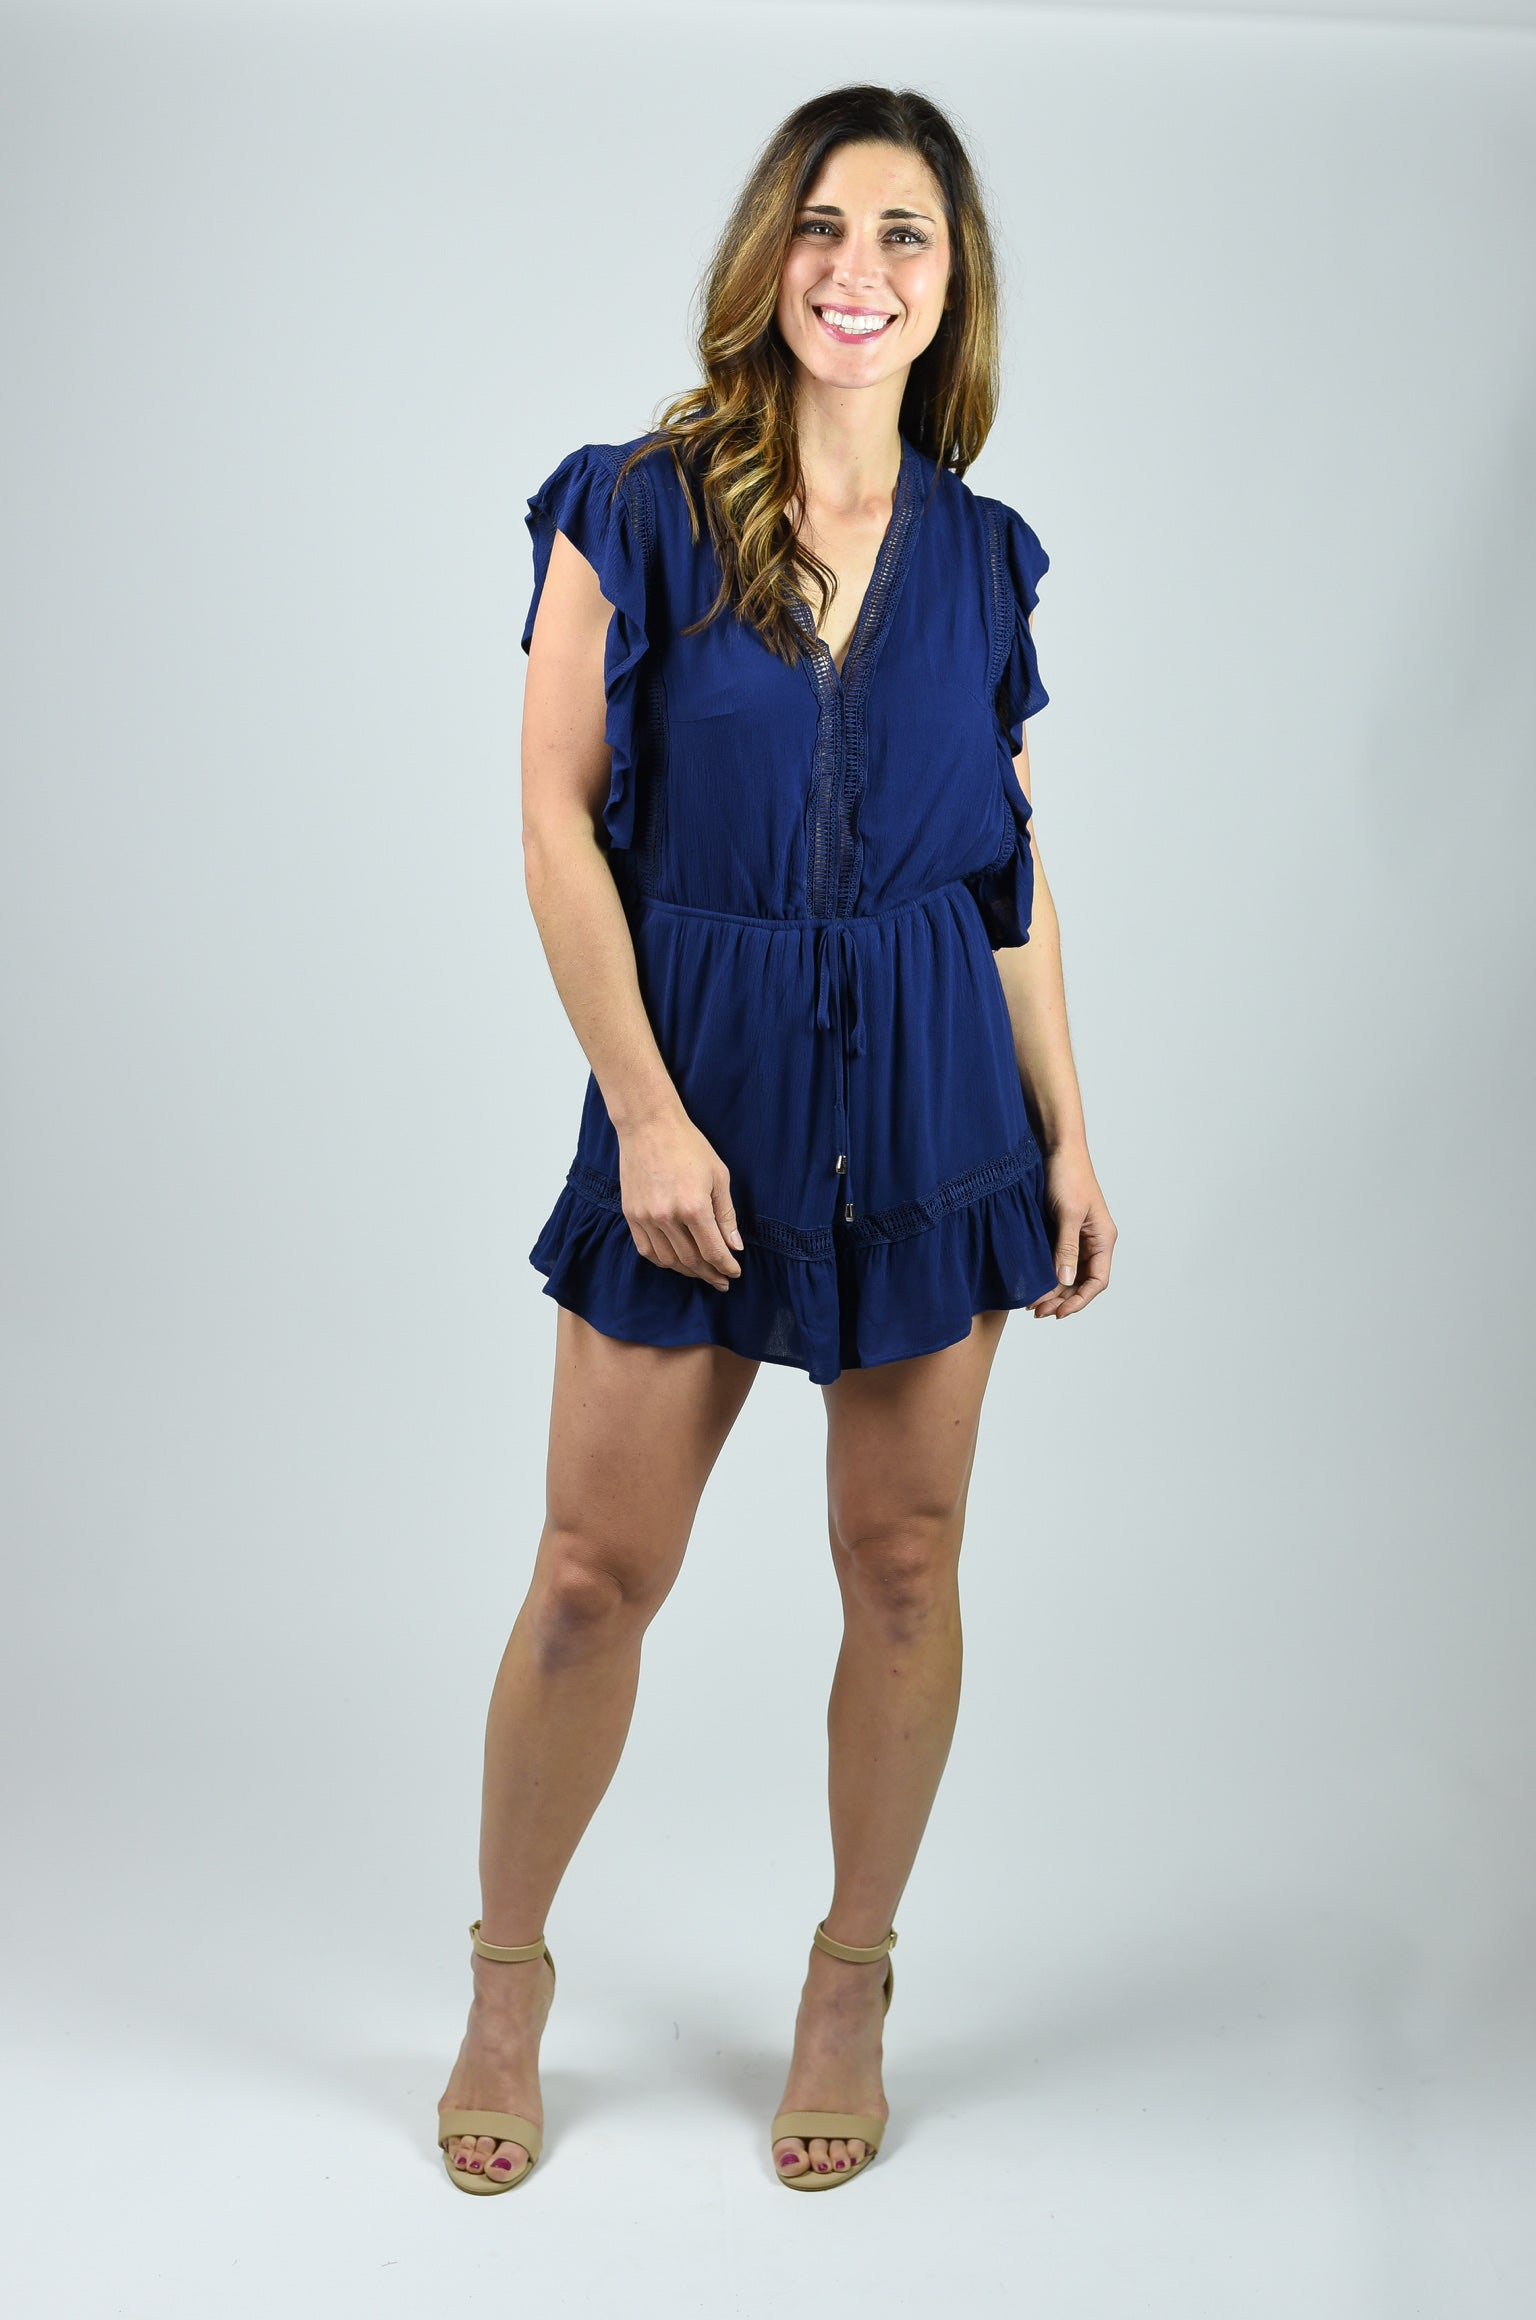 Want You Back Navy Ruffle Romper